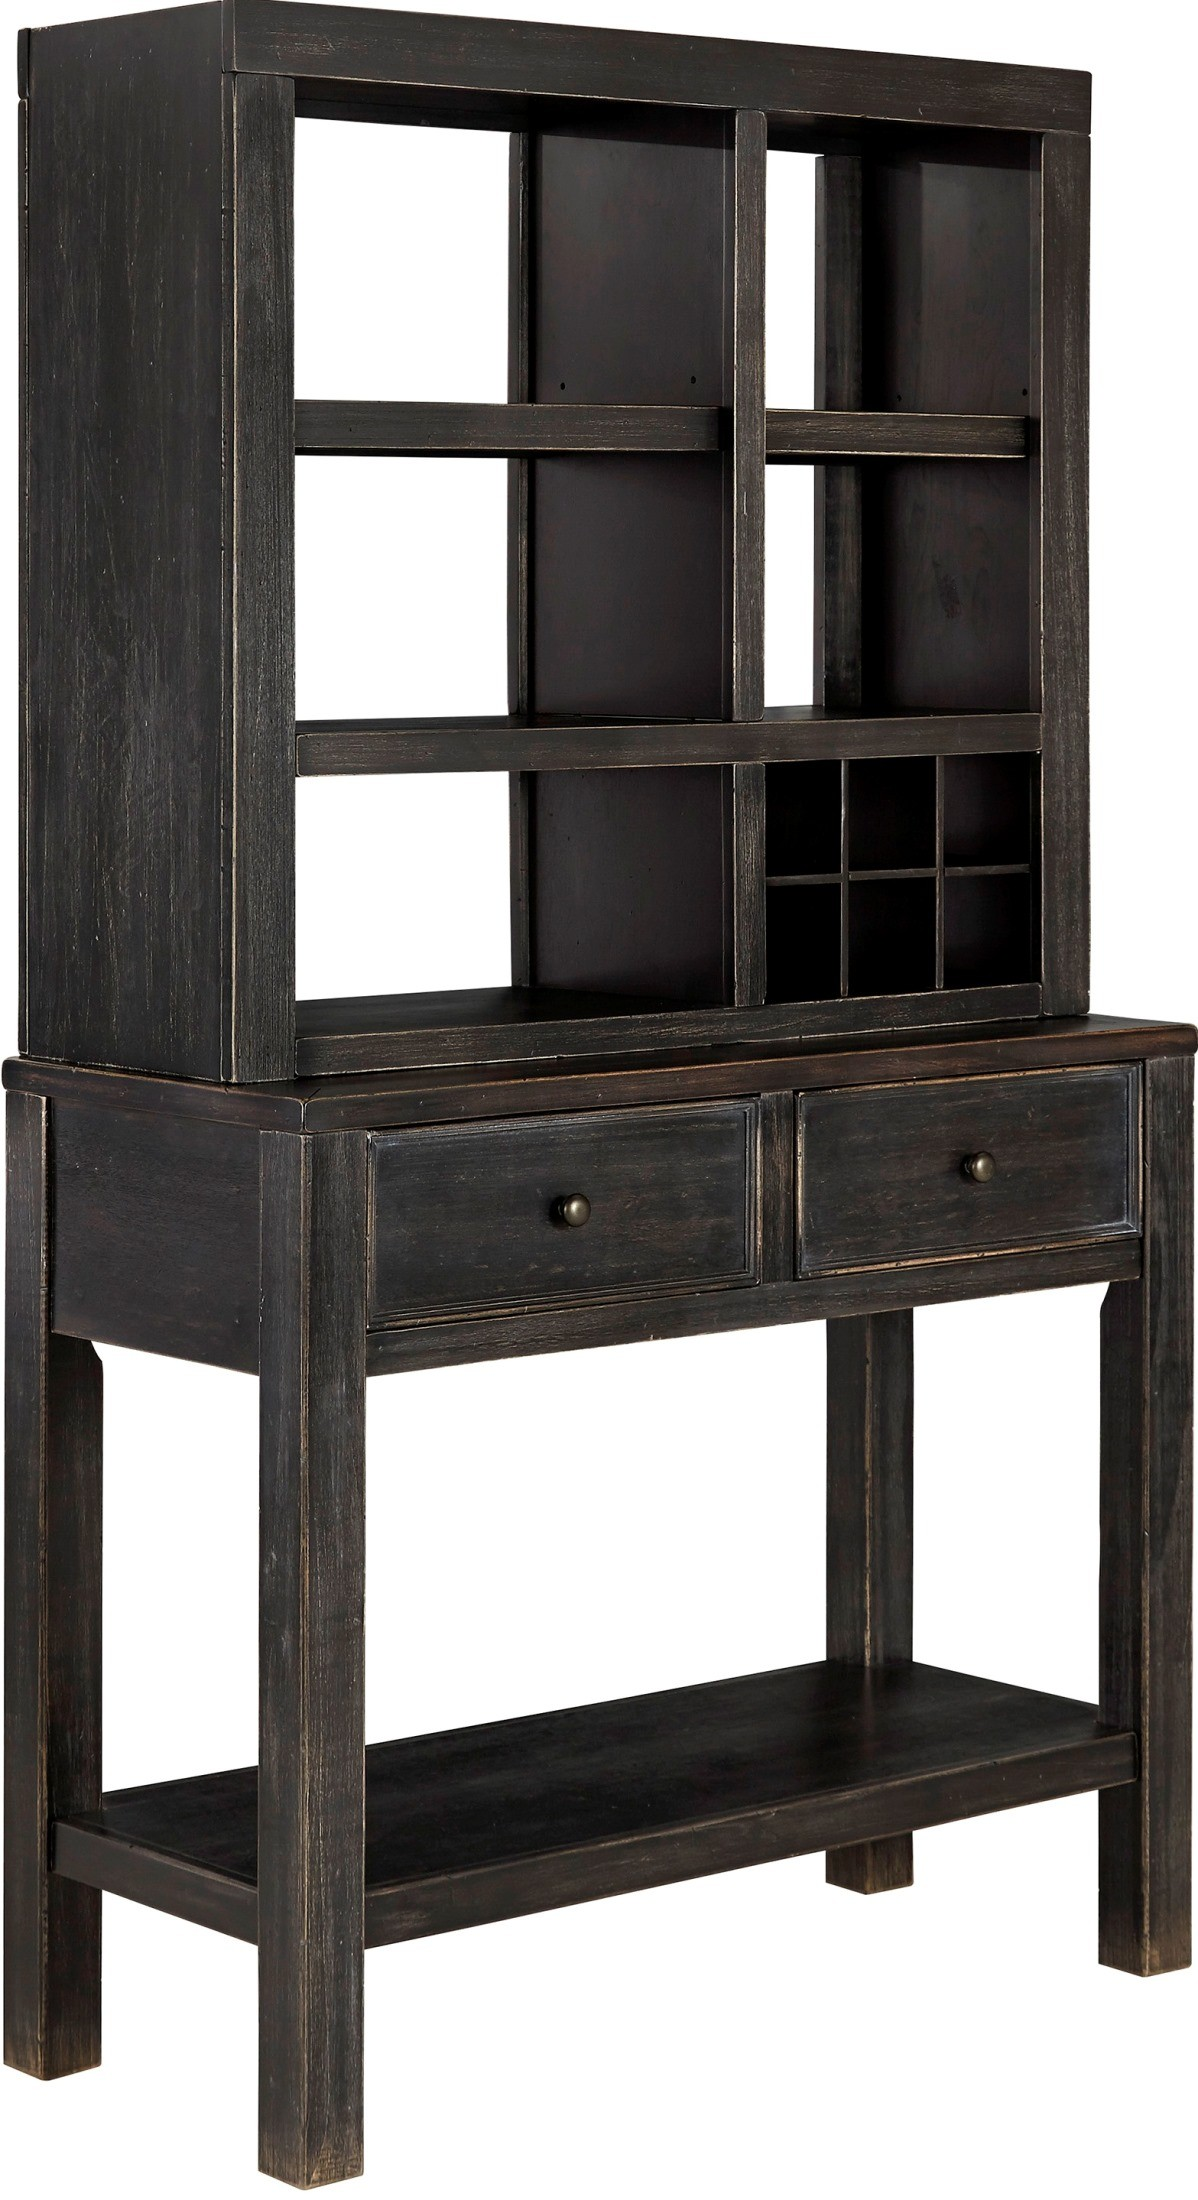 Gavelston dining room server with hutch from ashley d532 60 61 coleman furniture - Dining room server furniture ...